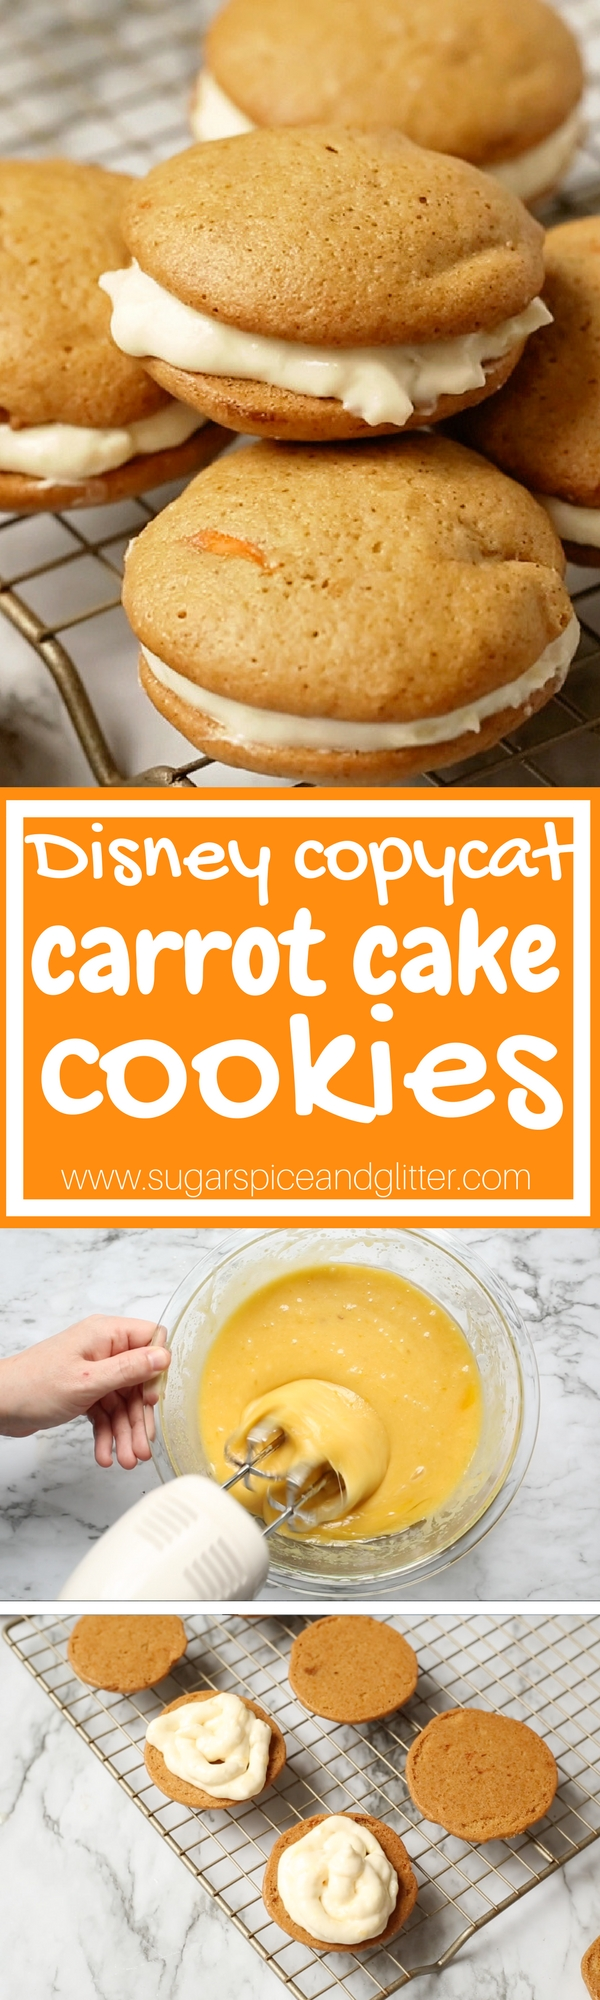 Carrot Cake Cookies Disney Recipe